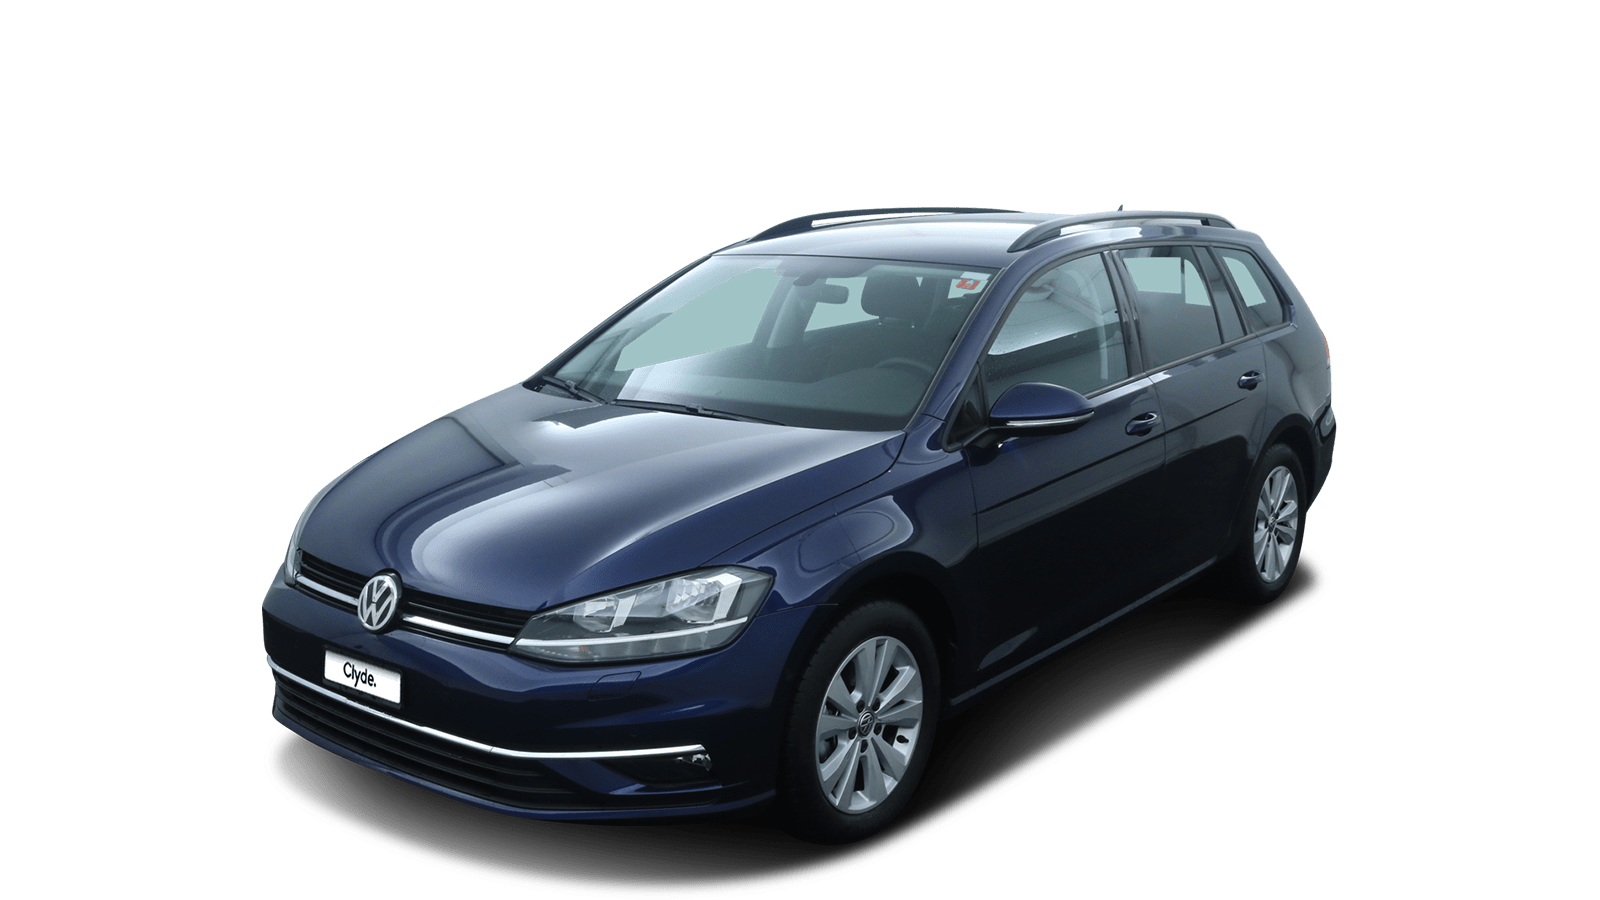 VW Golf Variant Blue front - Clyde car subscription